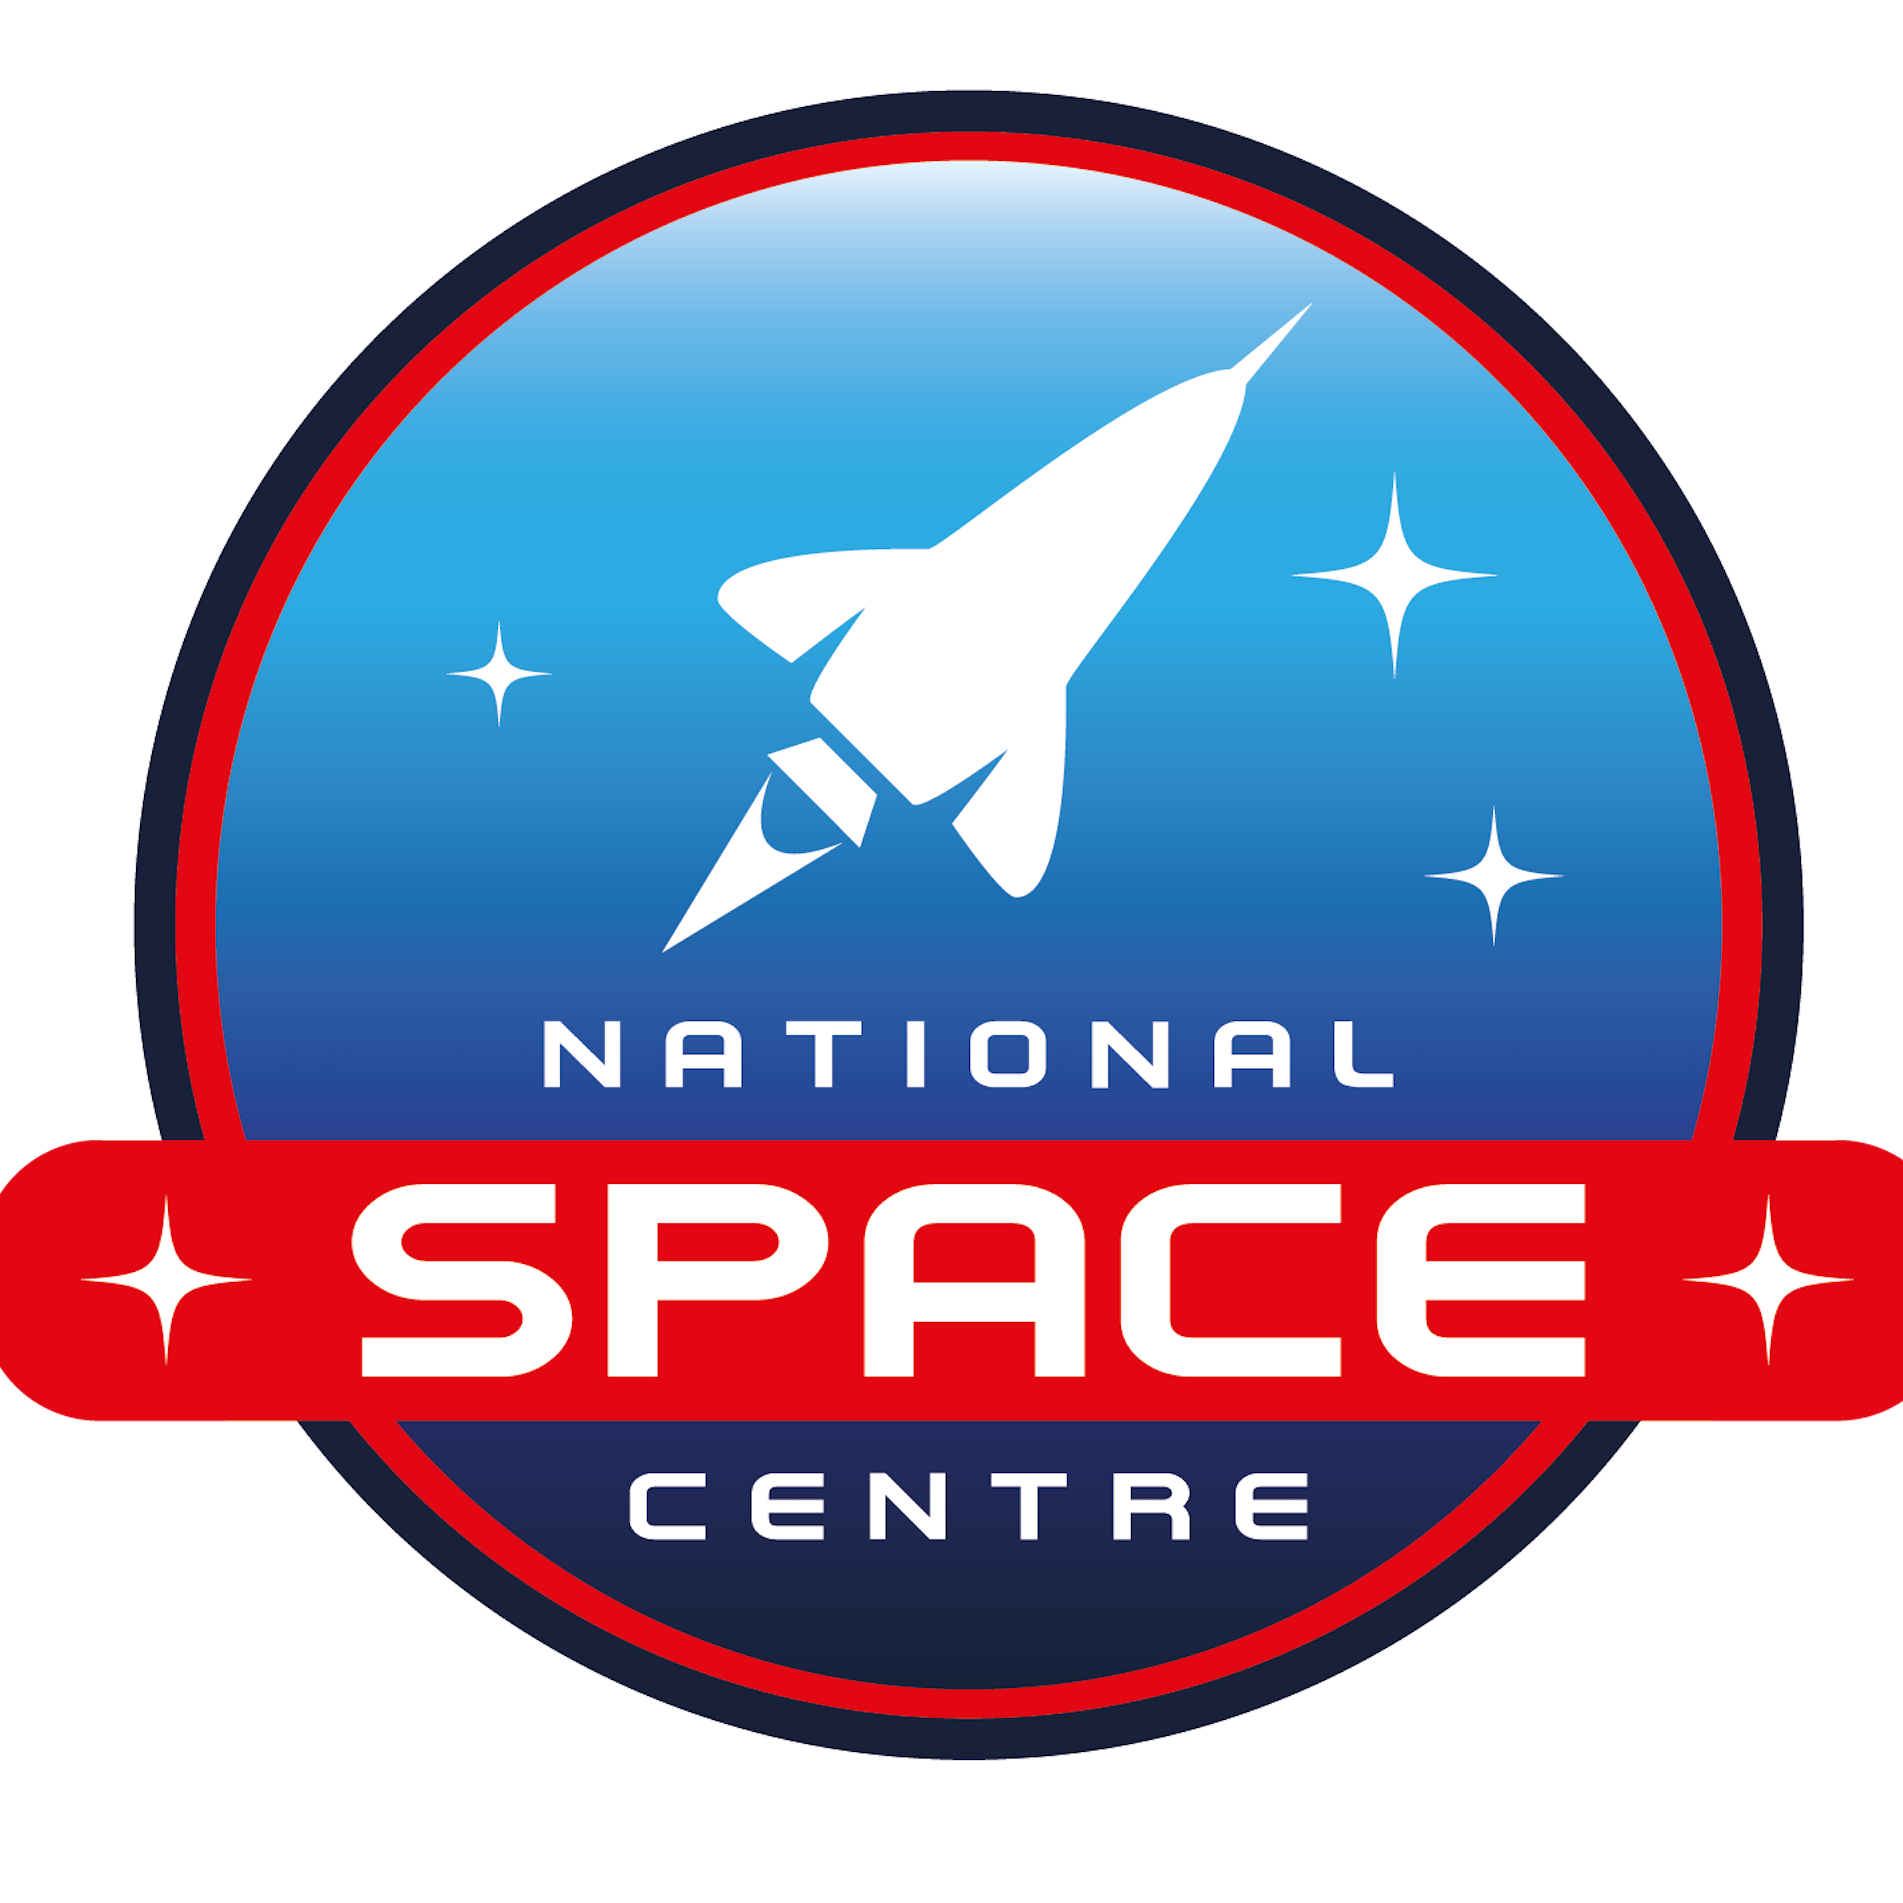 National Space Centre Leicester Events & Tickets 2020 | Ents24